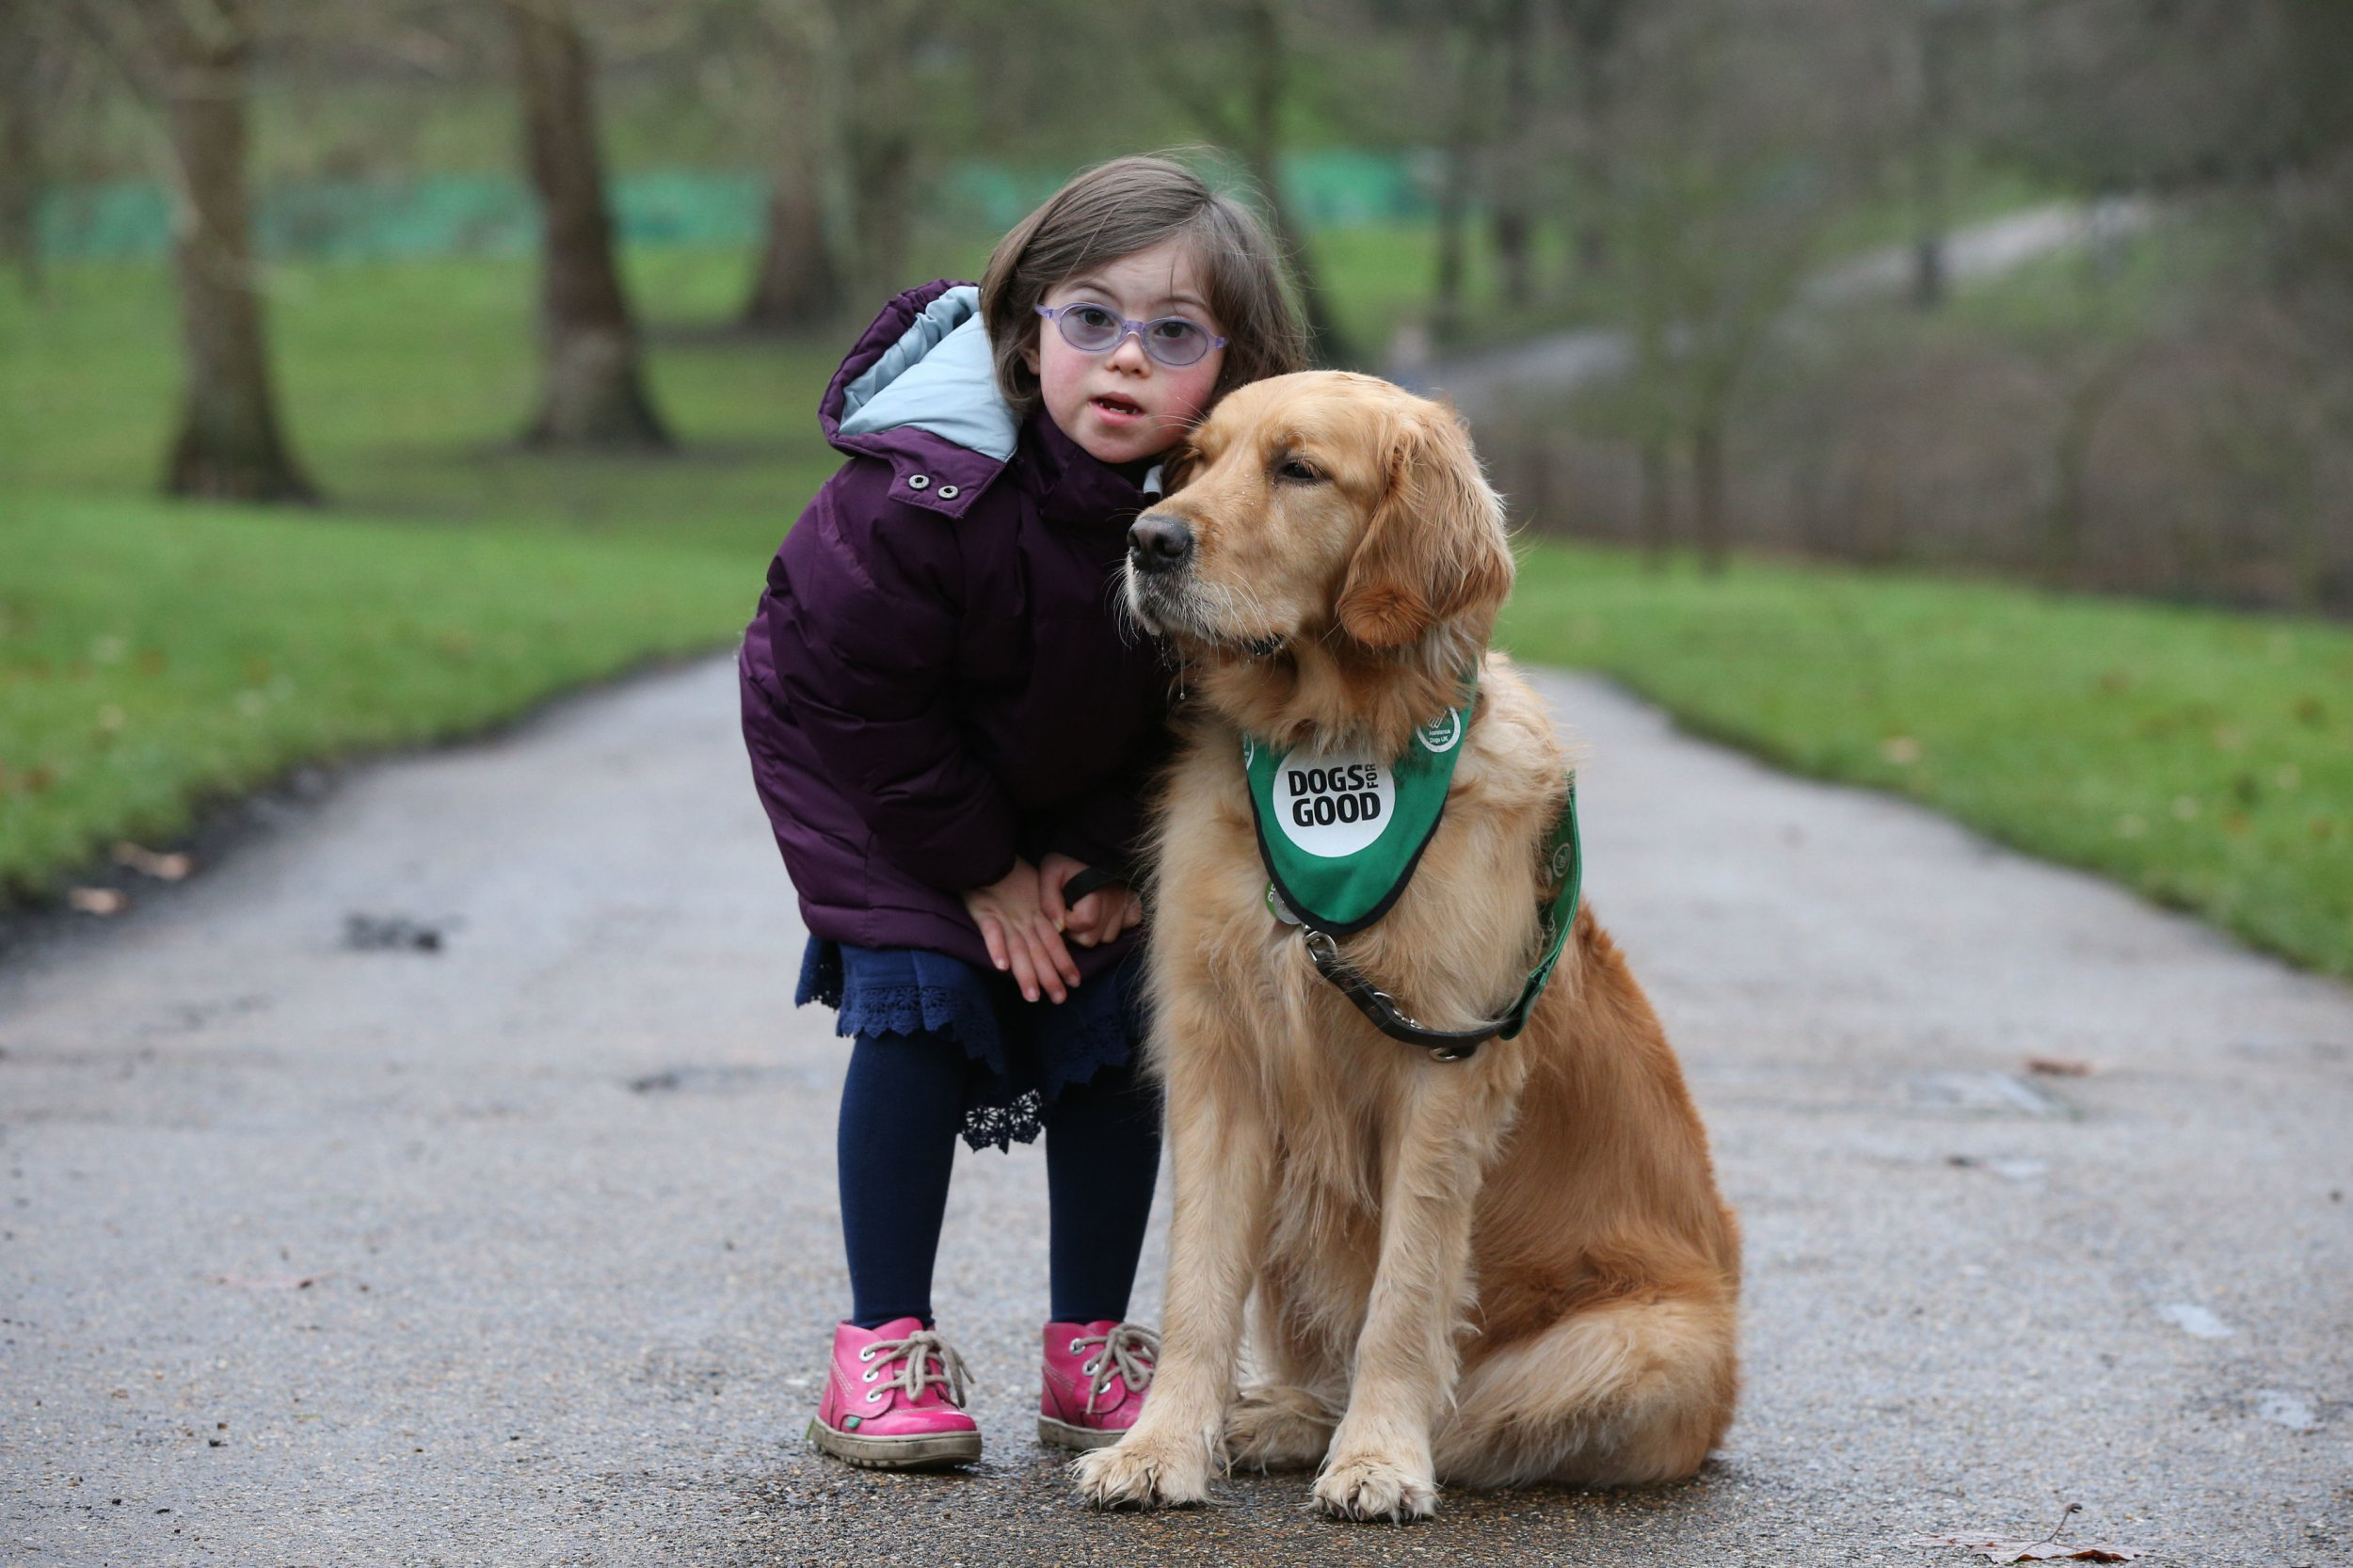 Girl with Down's Syndrome, 8, forms beautiful friendship with Golden Retriever